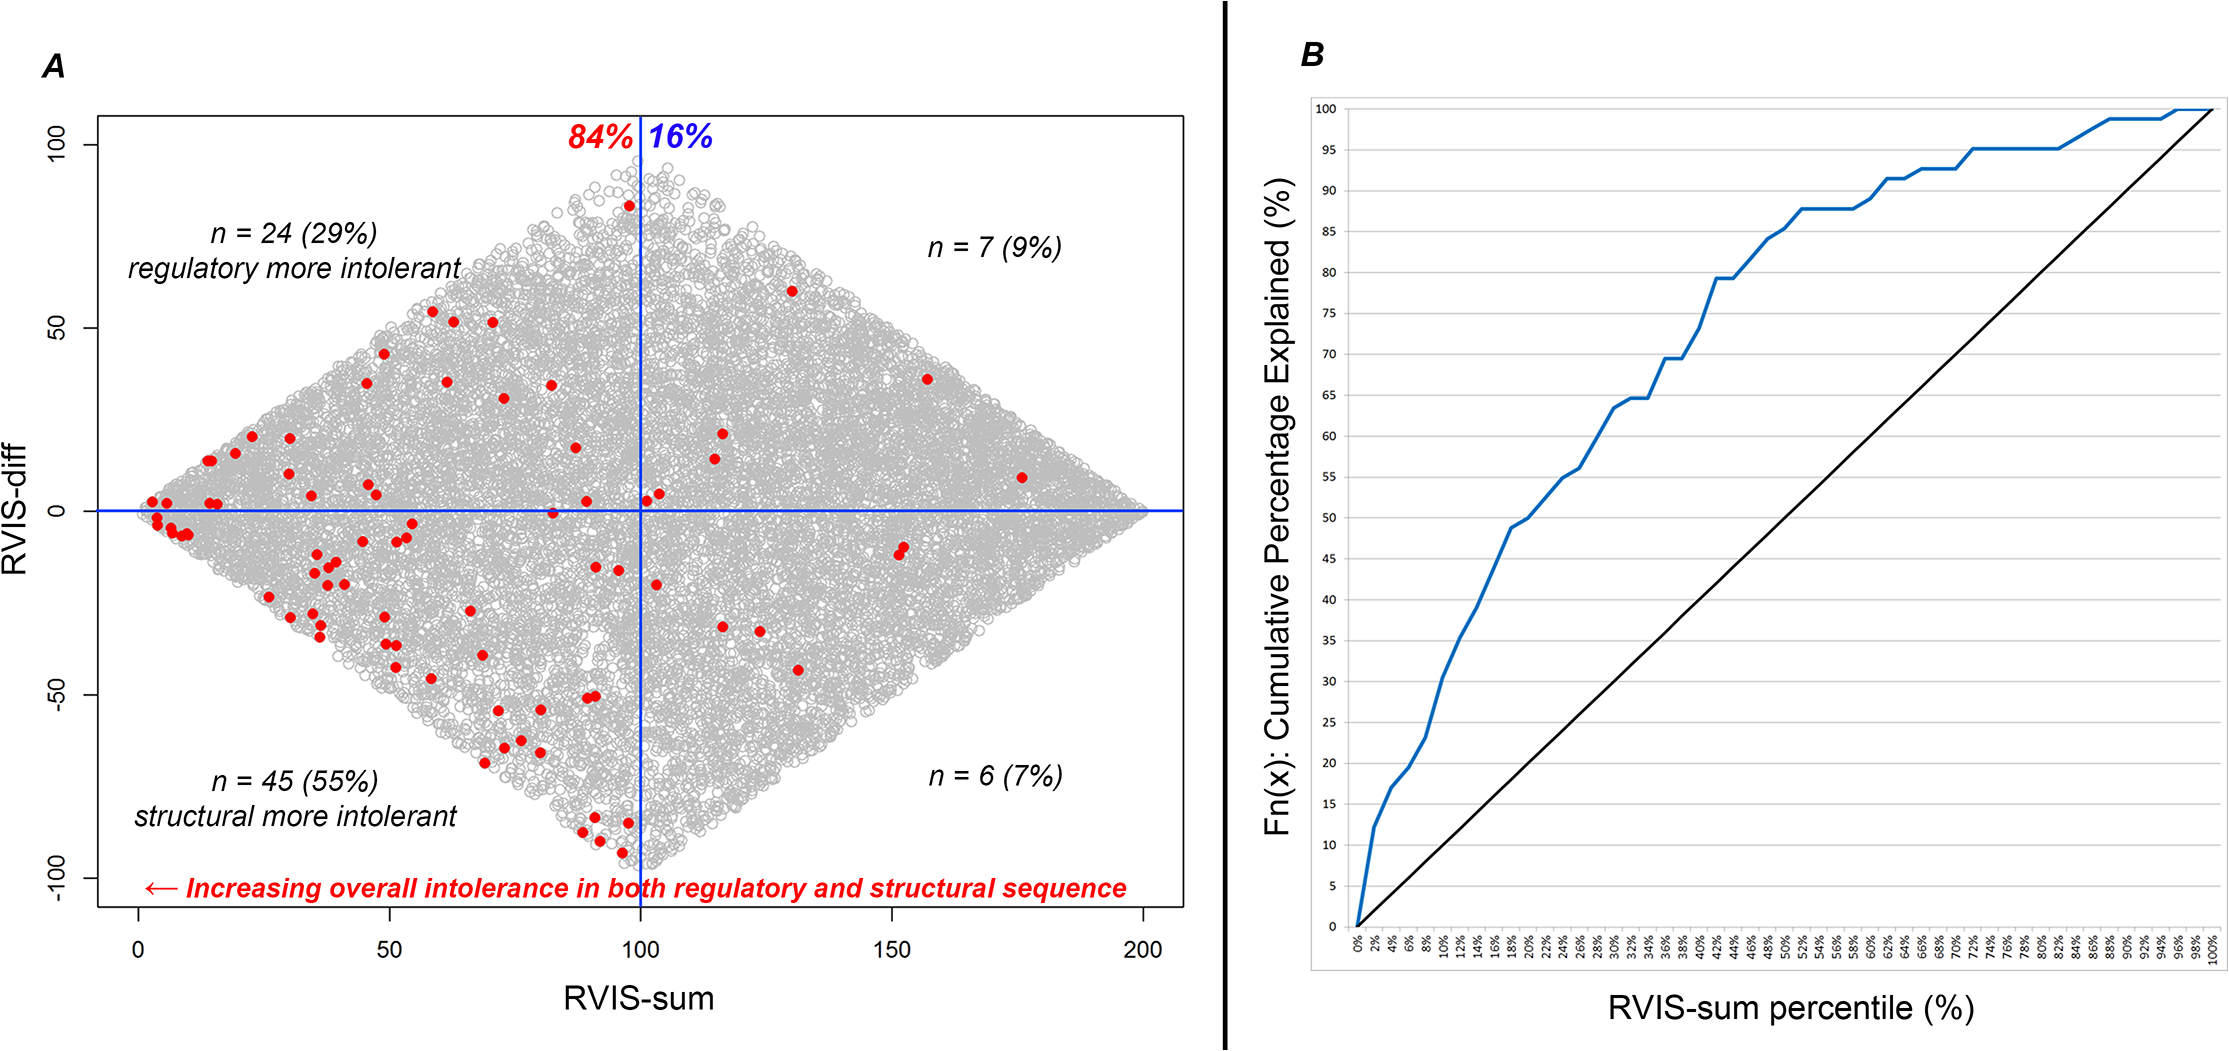 (A) Scatterplot of RVIS-sum (RVIS-CHGV + ncRVIS) and RVIS-diff (RVIS-CHGV–ncRVIS) scores. Each dot represents a gene. The grey dots represent the background genome-wide distribution. The red dots highlight the 82 OMIM haploinsufficiency genes with reported causal de novo mutations. A higher (positive Y-axis value) RVIS-diff score indicates genes where we might have a greater expectation of gene dosage aberrations being important compared with protein structure aberrations. A lower RVIS-sum (X-axis value) highlights genes that are increasingly intolerant in both their noncoding and protein-coding sequence. (B) A cumulative percentage plot for the RVIS-sum percentile accommodating the 82 OMIM halpoinsufficiency genes.